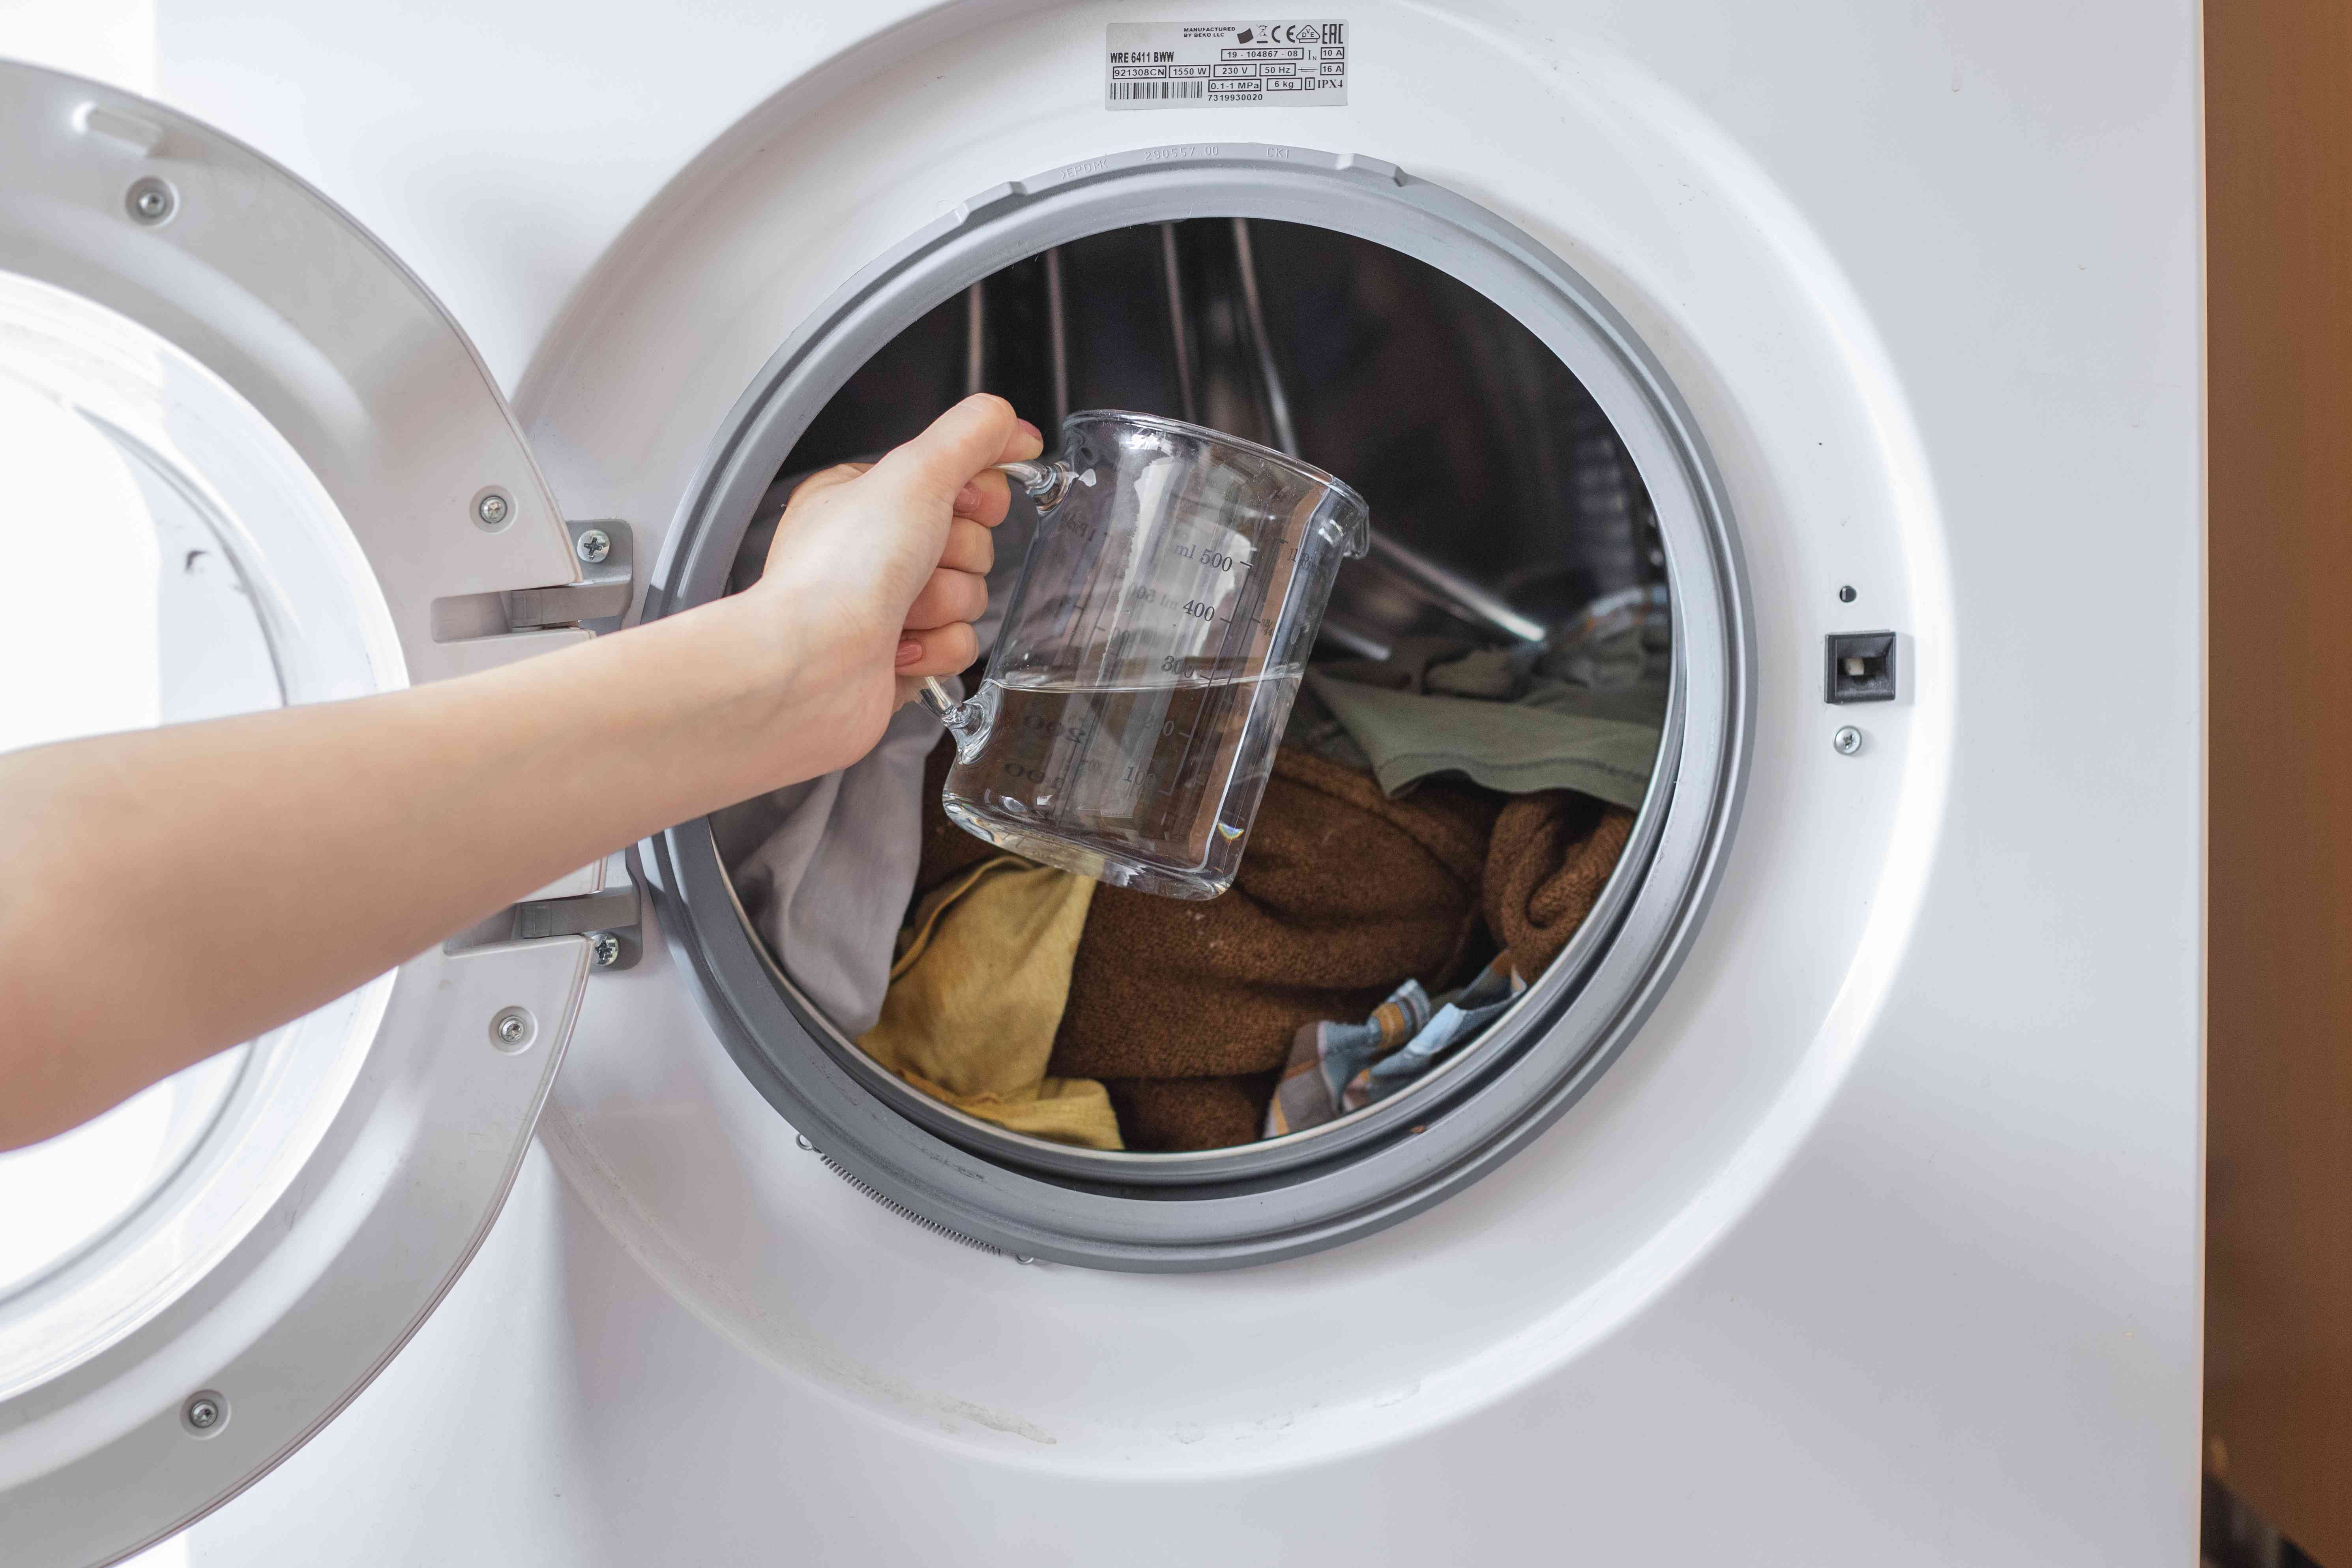 open washing machine door with hand holding pitcher of vinegar to pour on dirty clothes